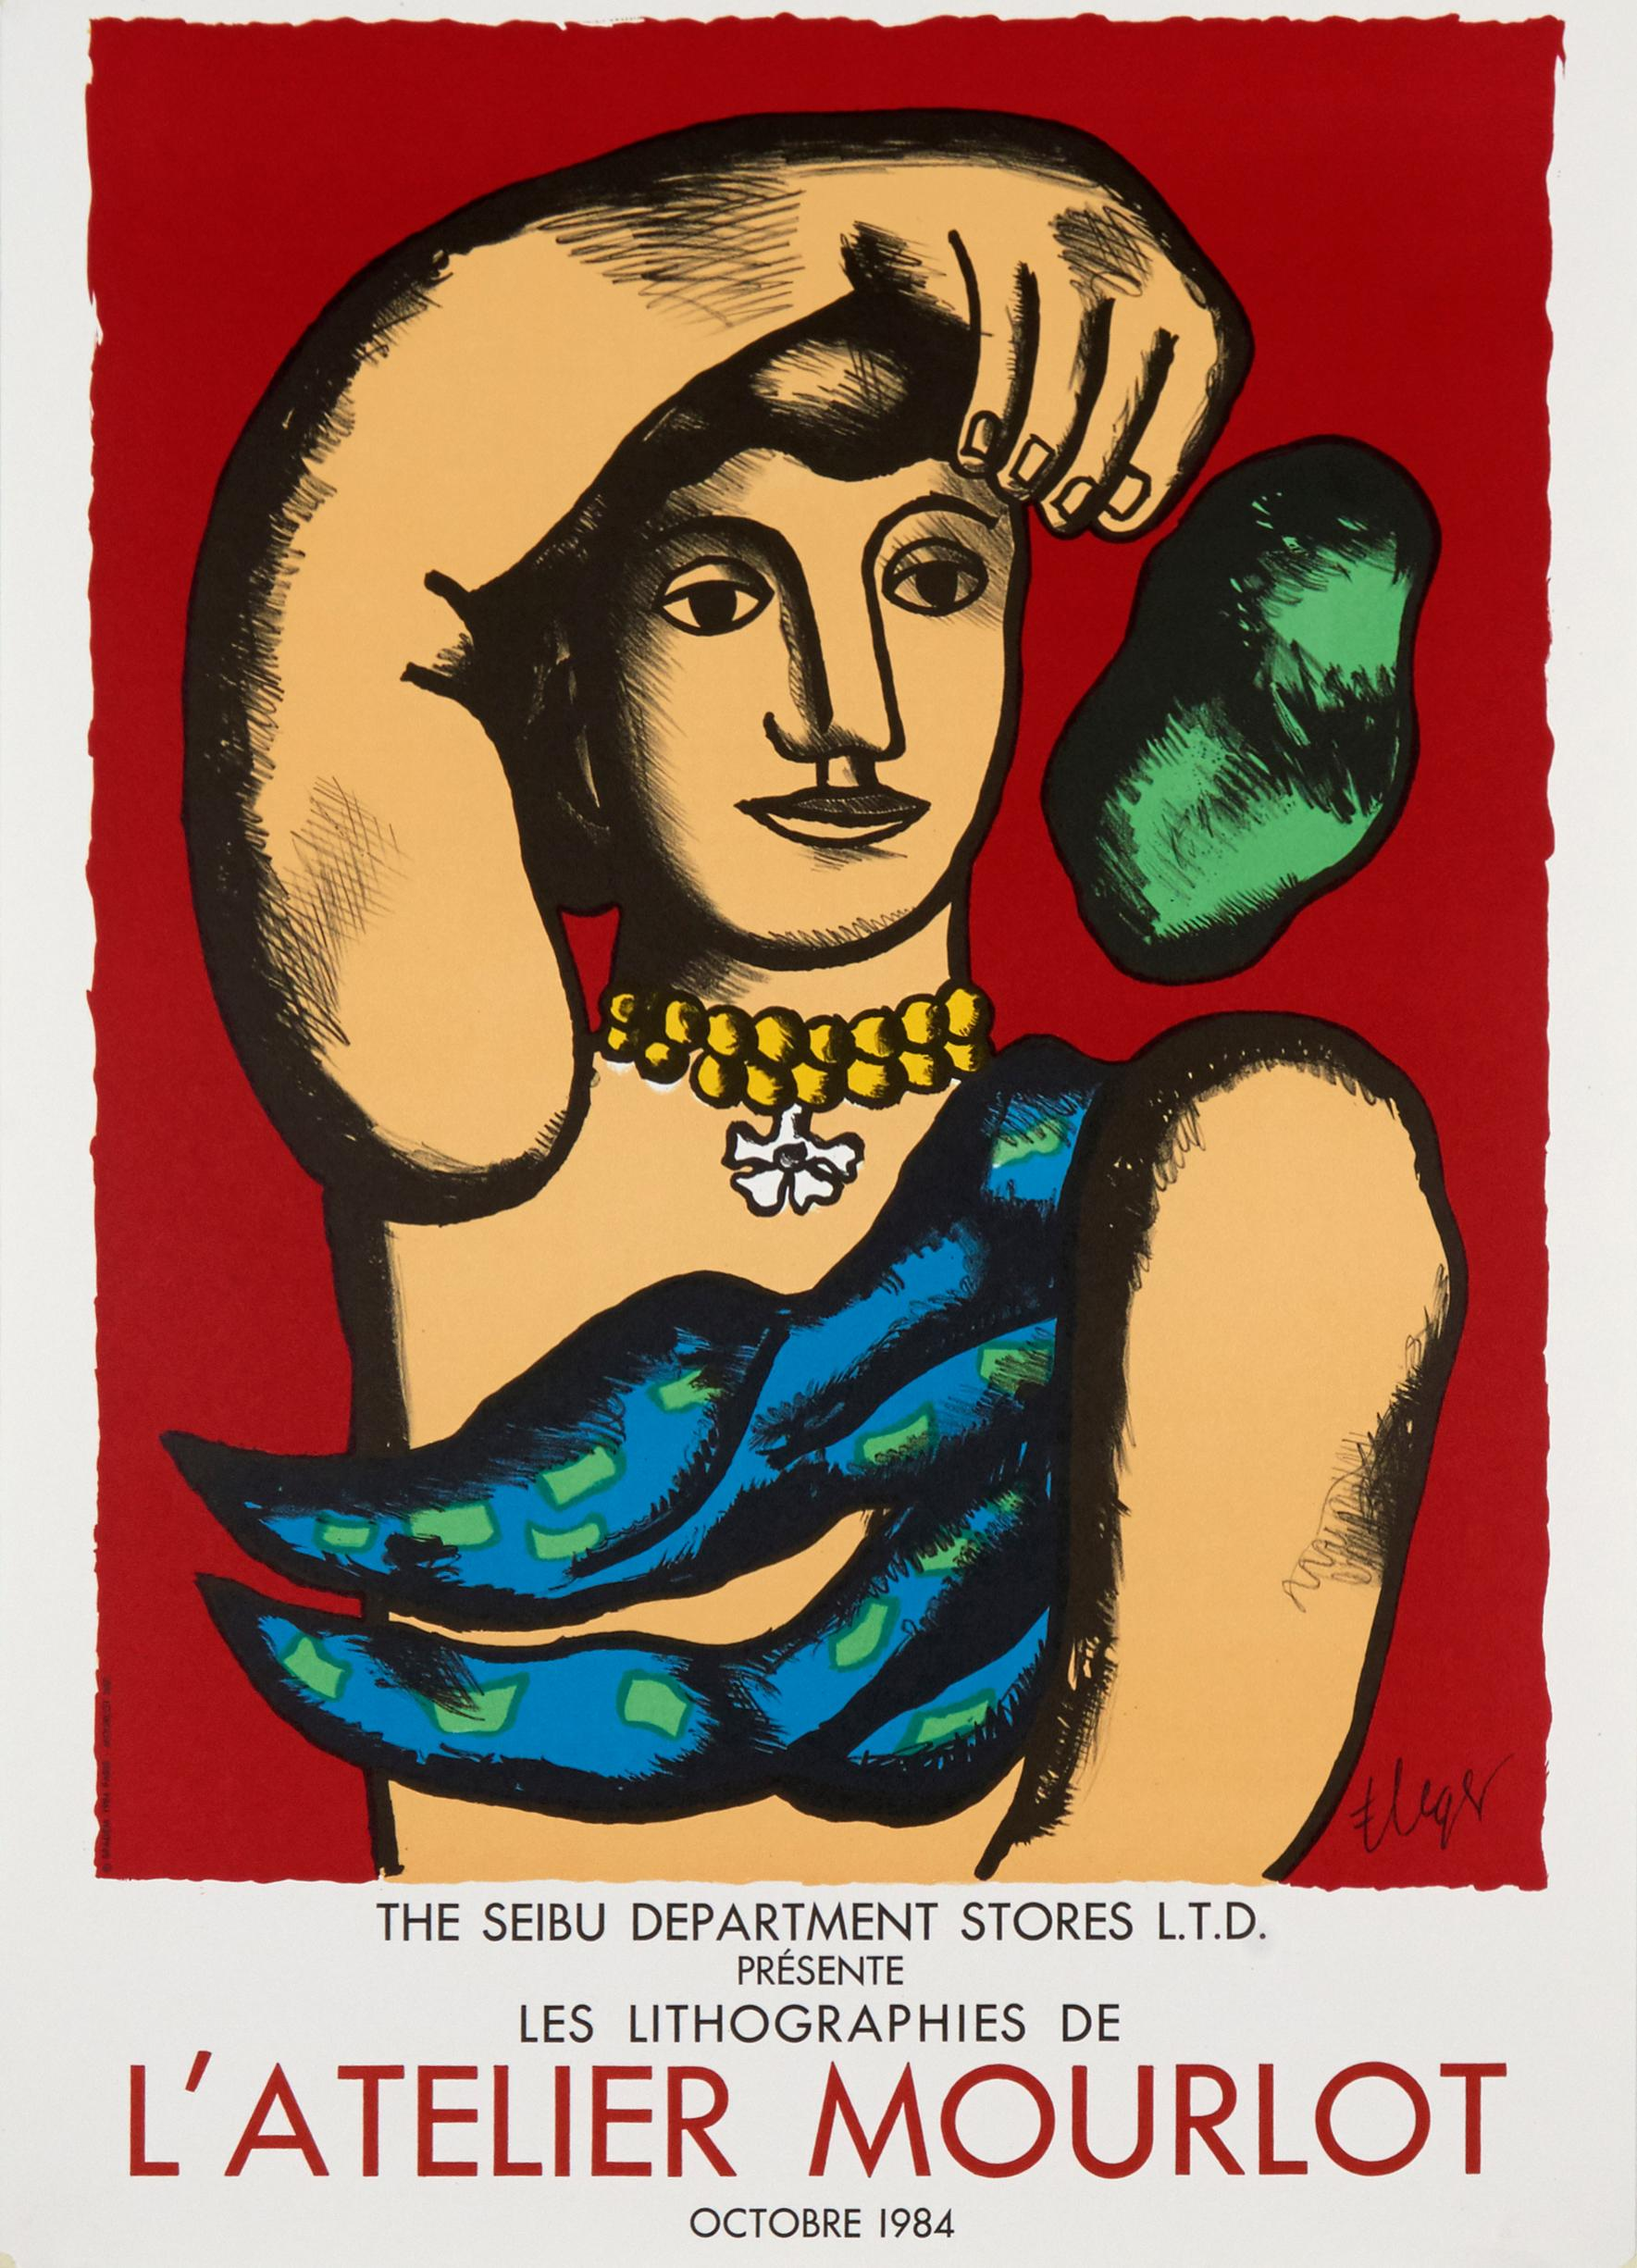 L'Atelier Mourlot by Fernand Leger lithographic poster